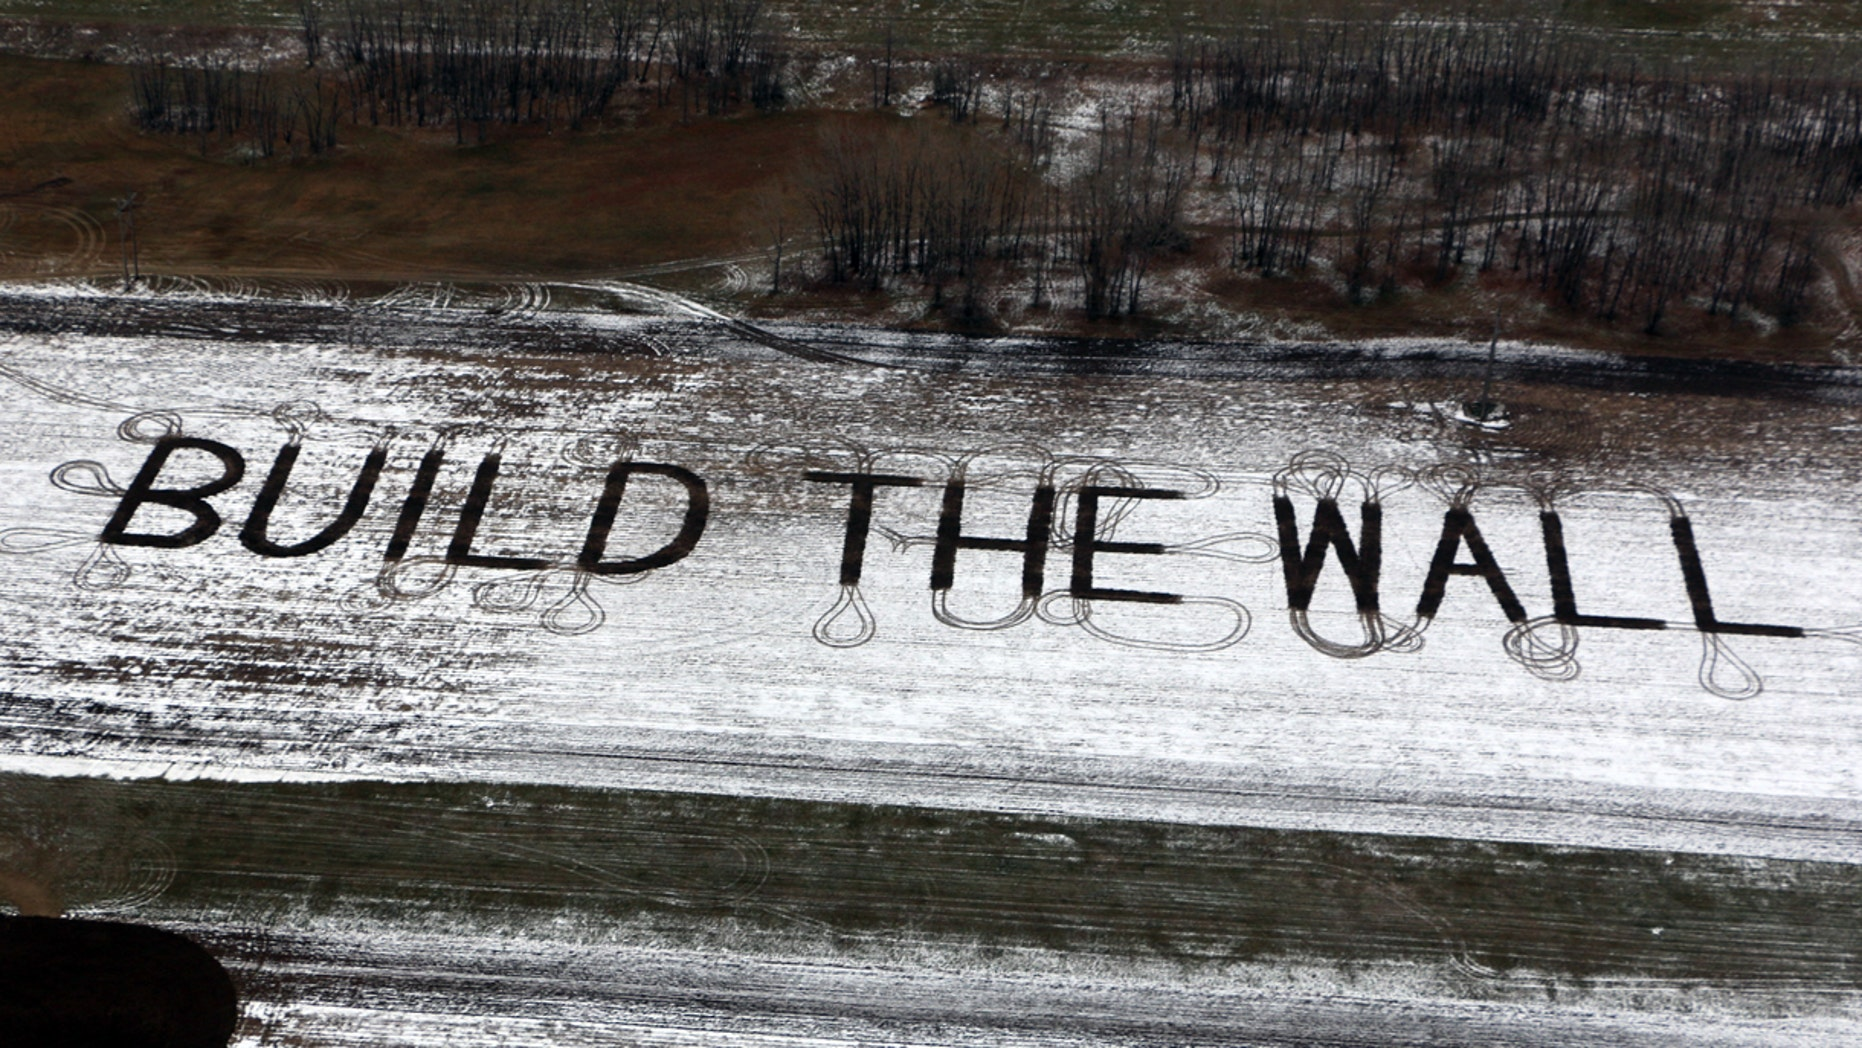 """Farmer Gene Hanson of Edgeley, North Dakota plowed a message of support for President Trump: """"Build the wall."""""""